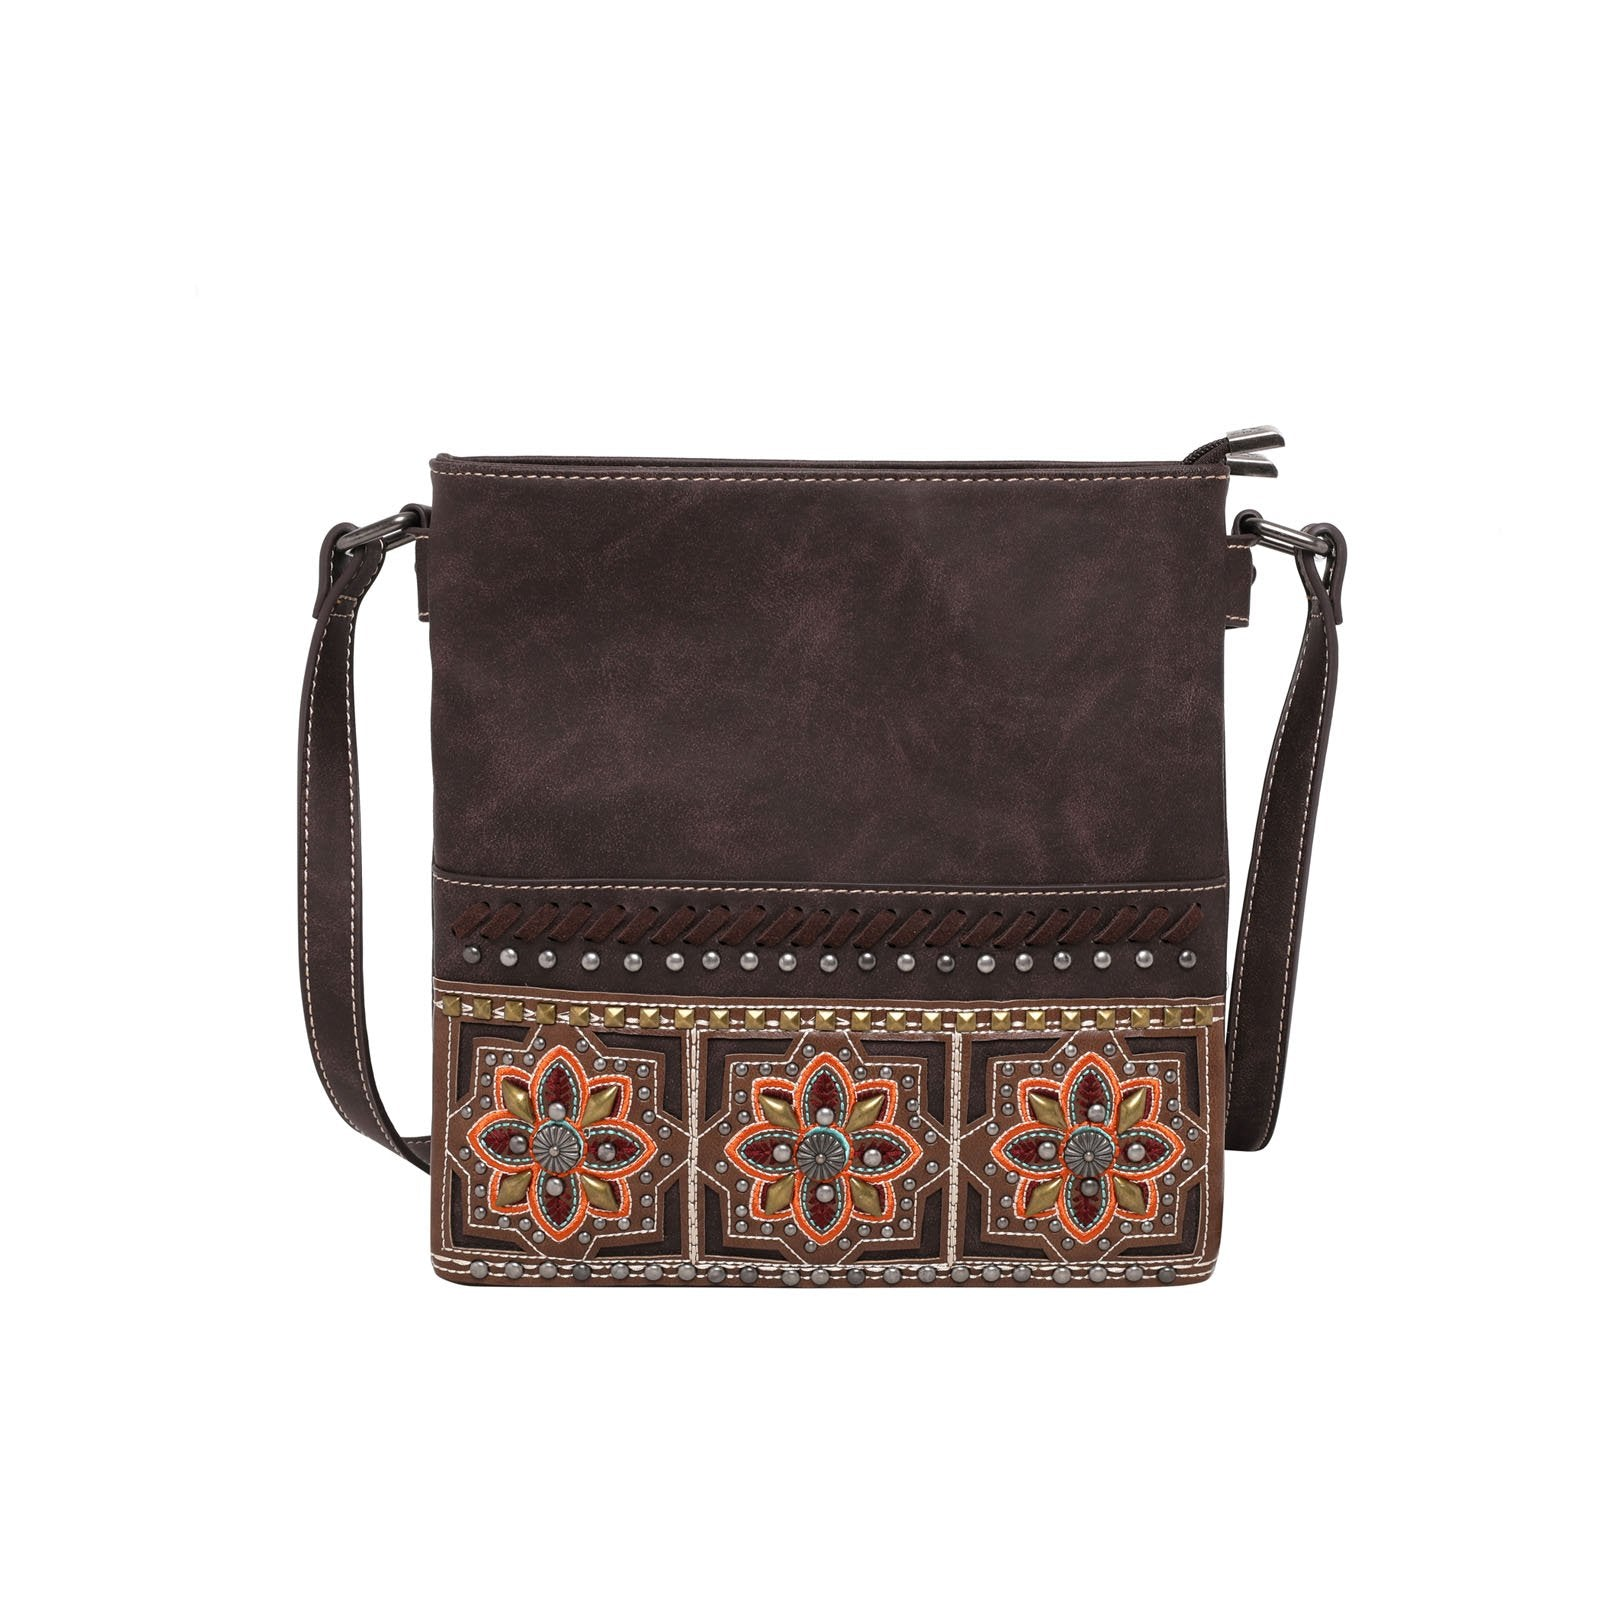 Montana West Embroidered Collection Concealed Carry Crossbody Bag